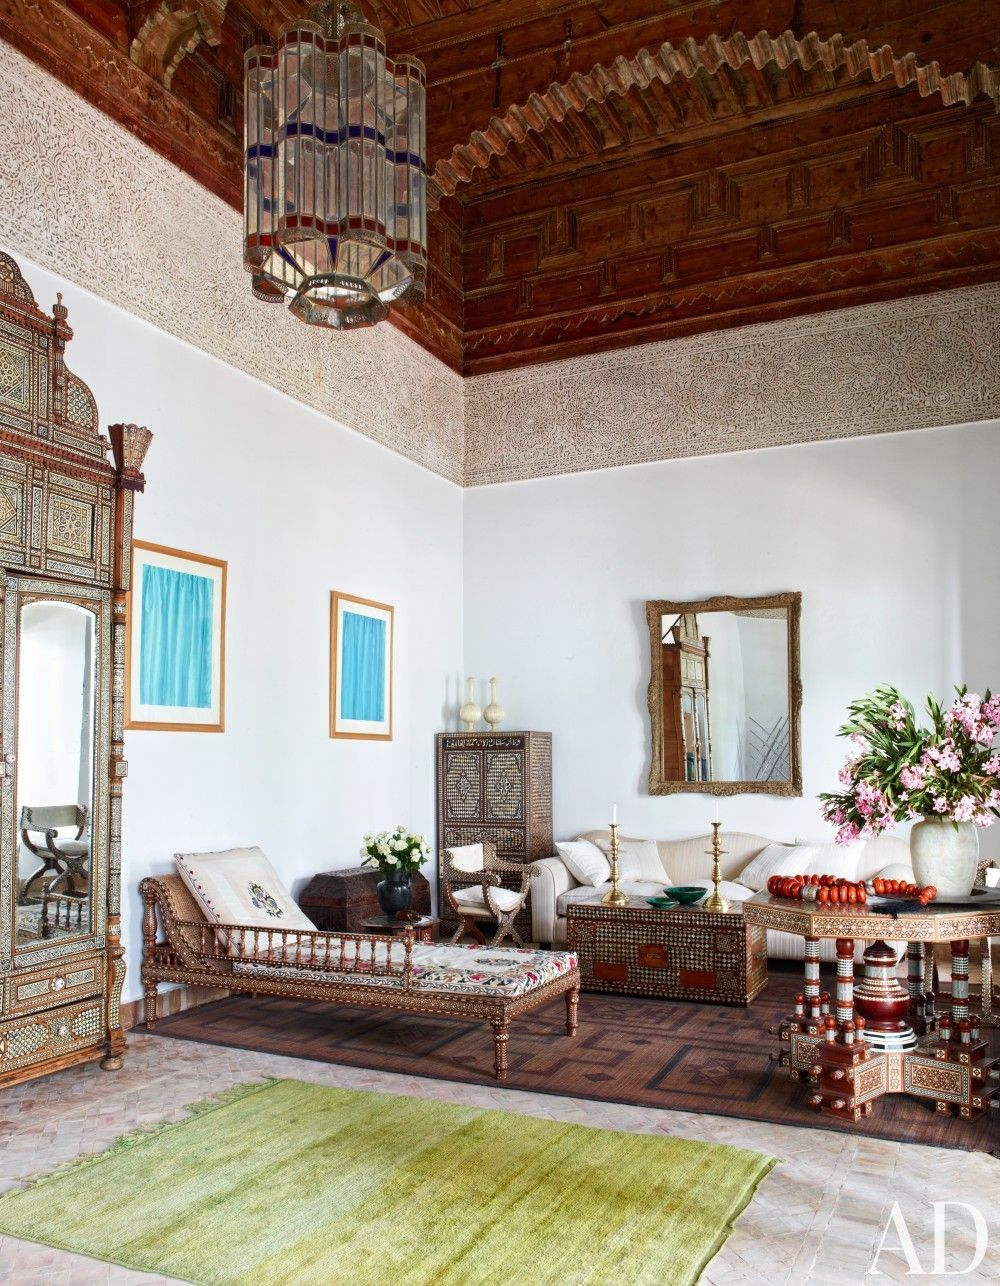 Exotic Living Room by Ahmad Sardar-Afkhami in Marrakech, Mo ...